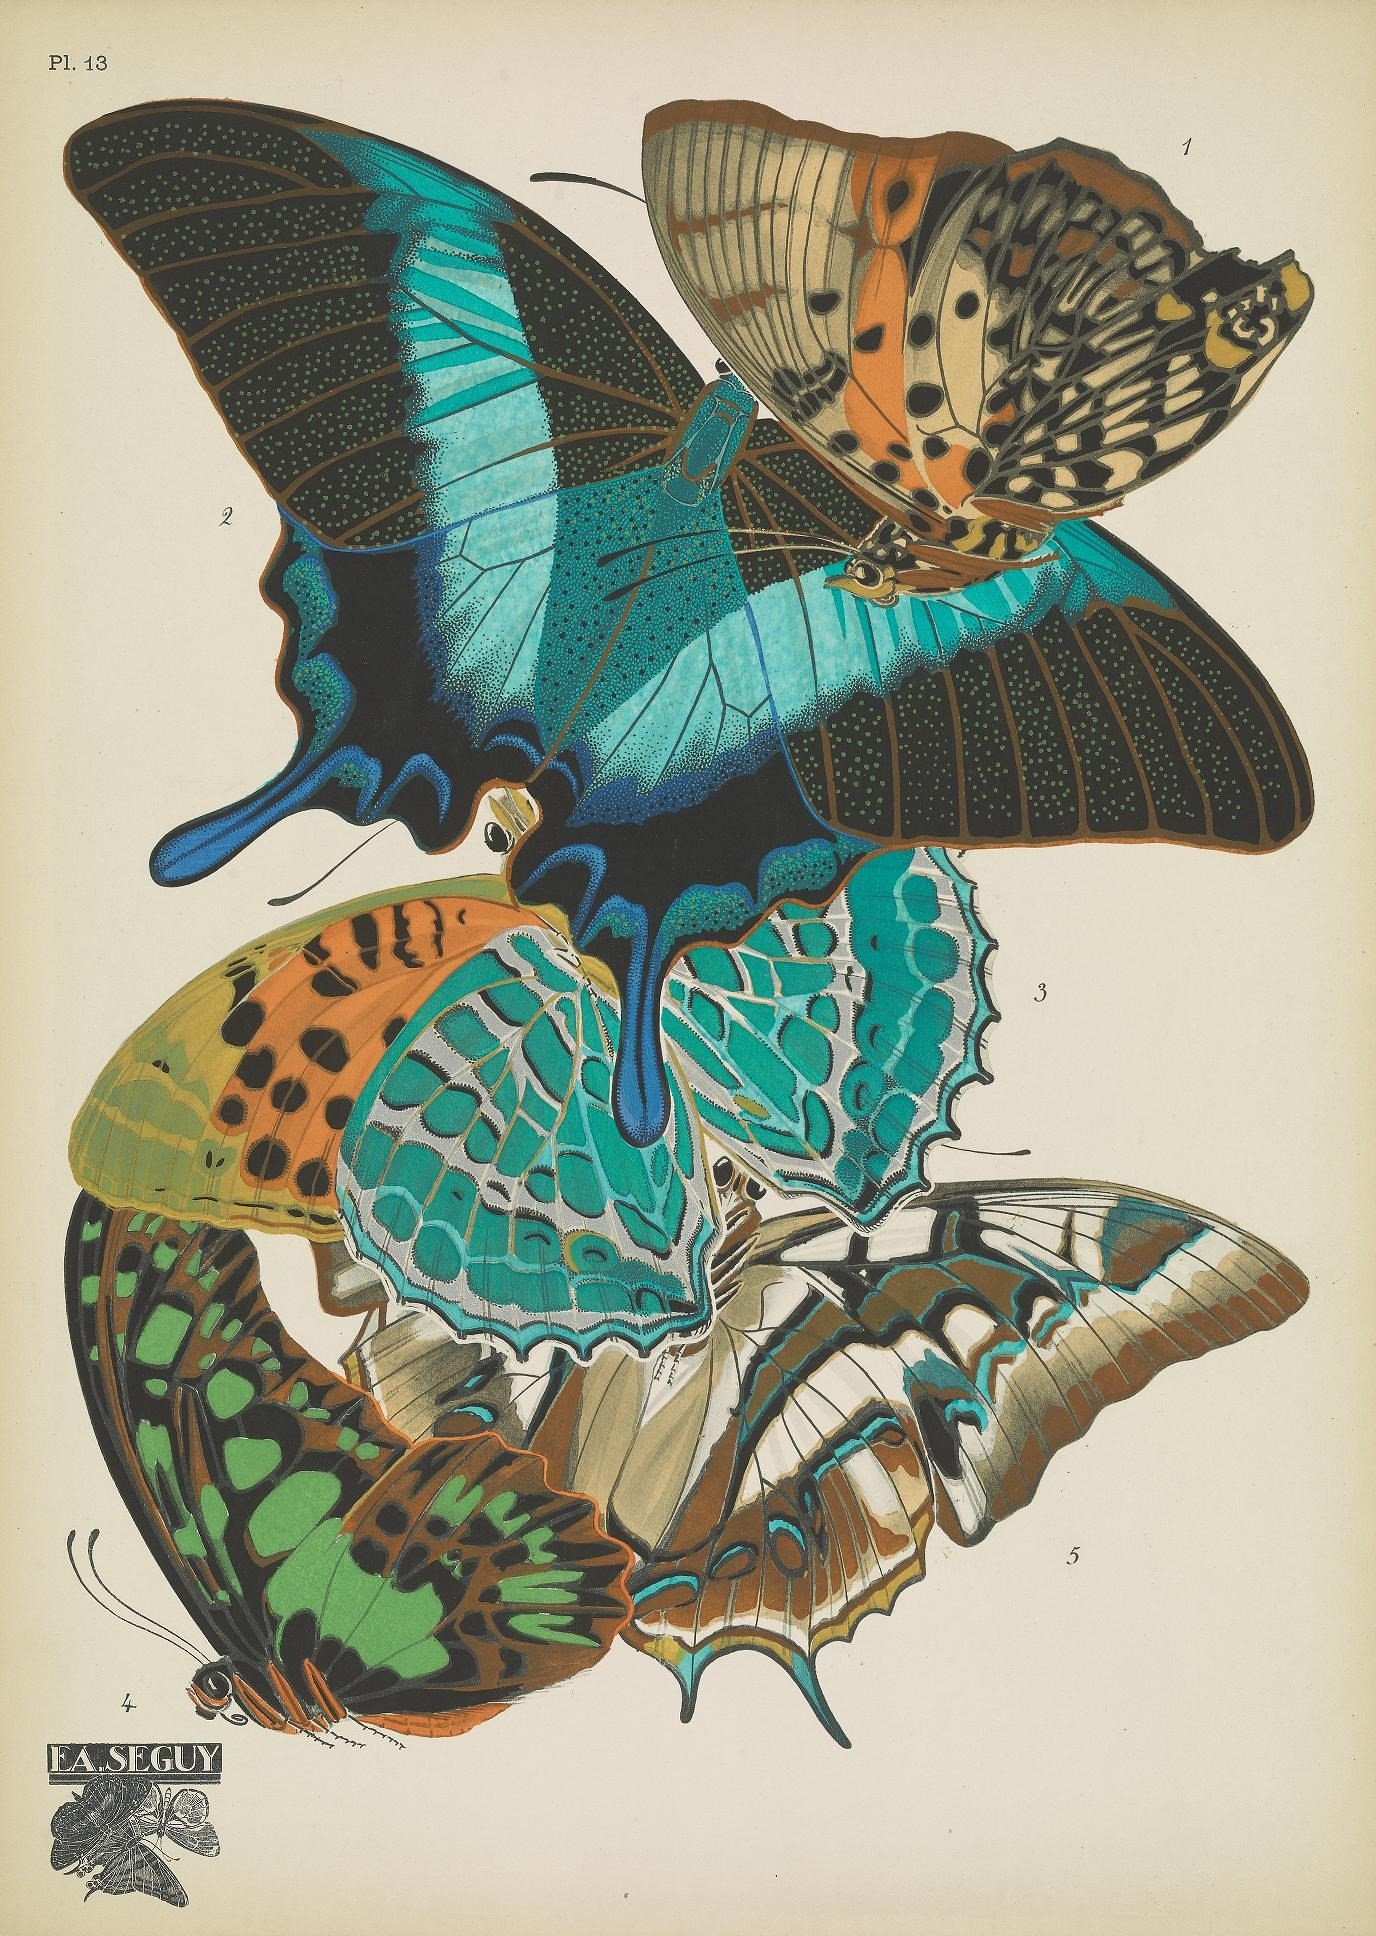 illustration of multiple butterflies positioned on top of one another.